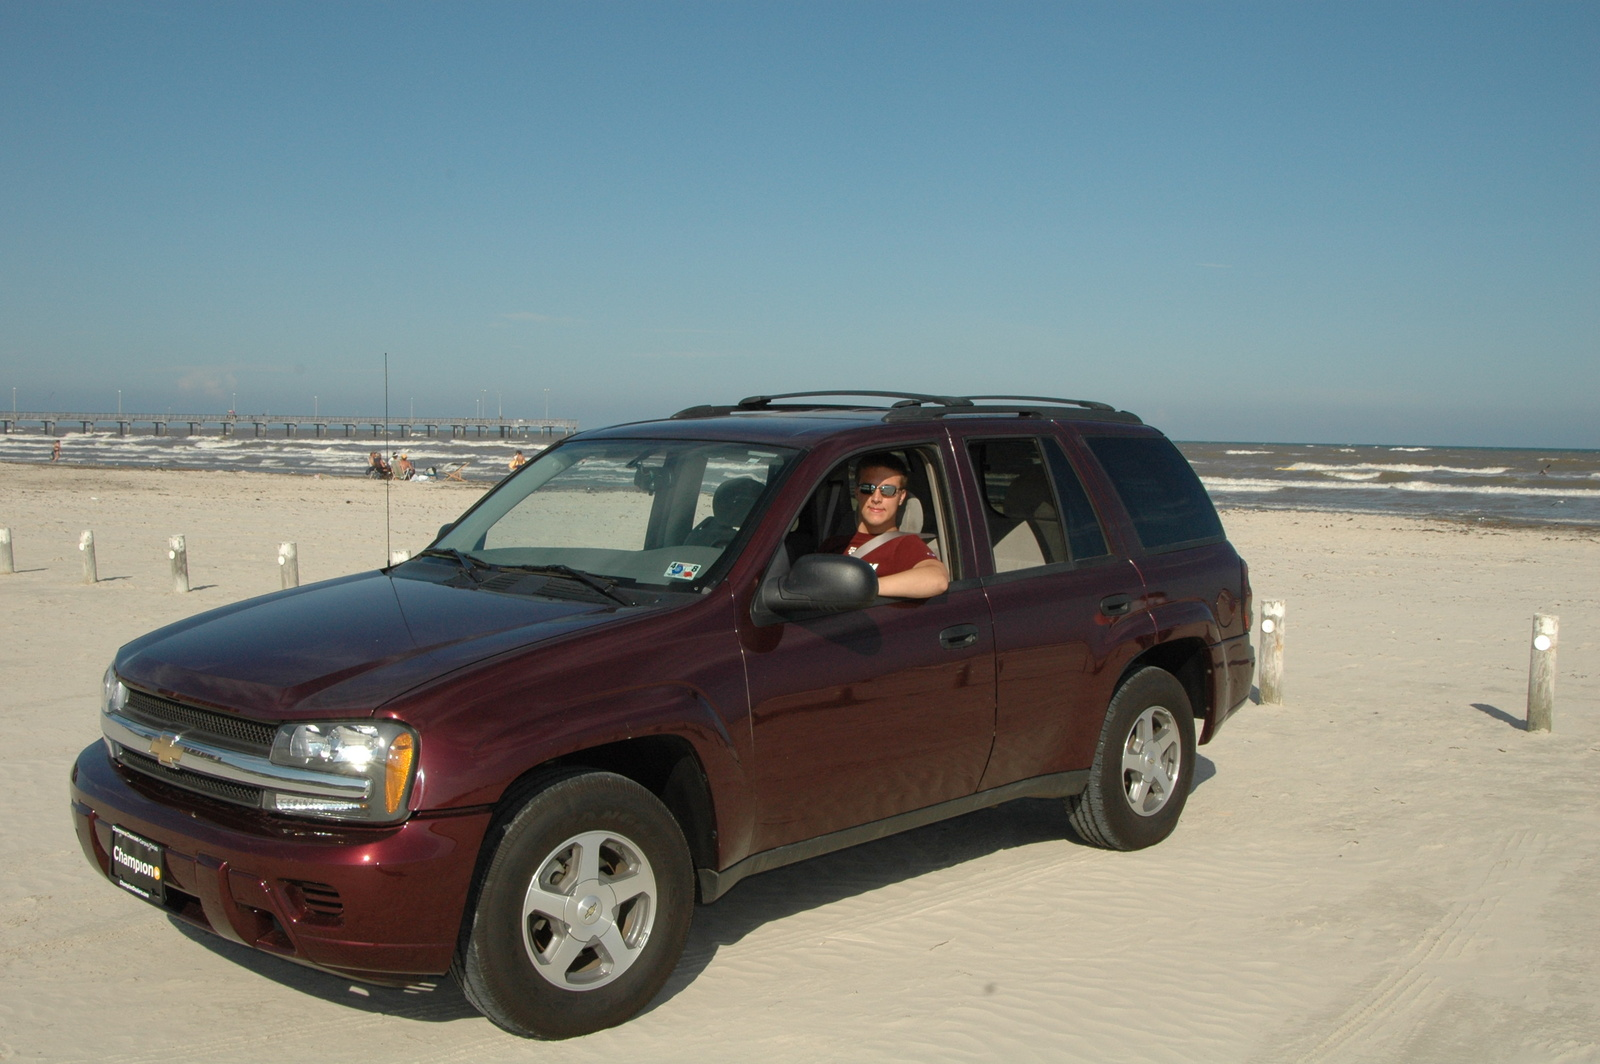 2006 Chevrolet TrailBlazer LS 4WD - Pictures - 2006 Chevrolet ...